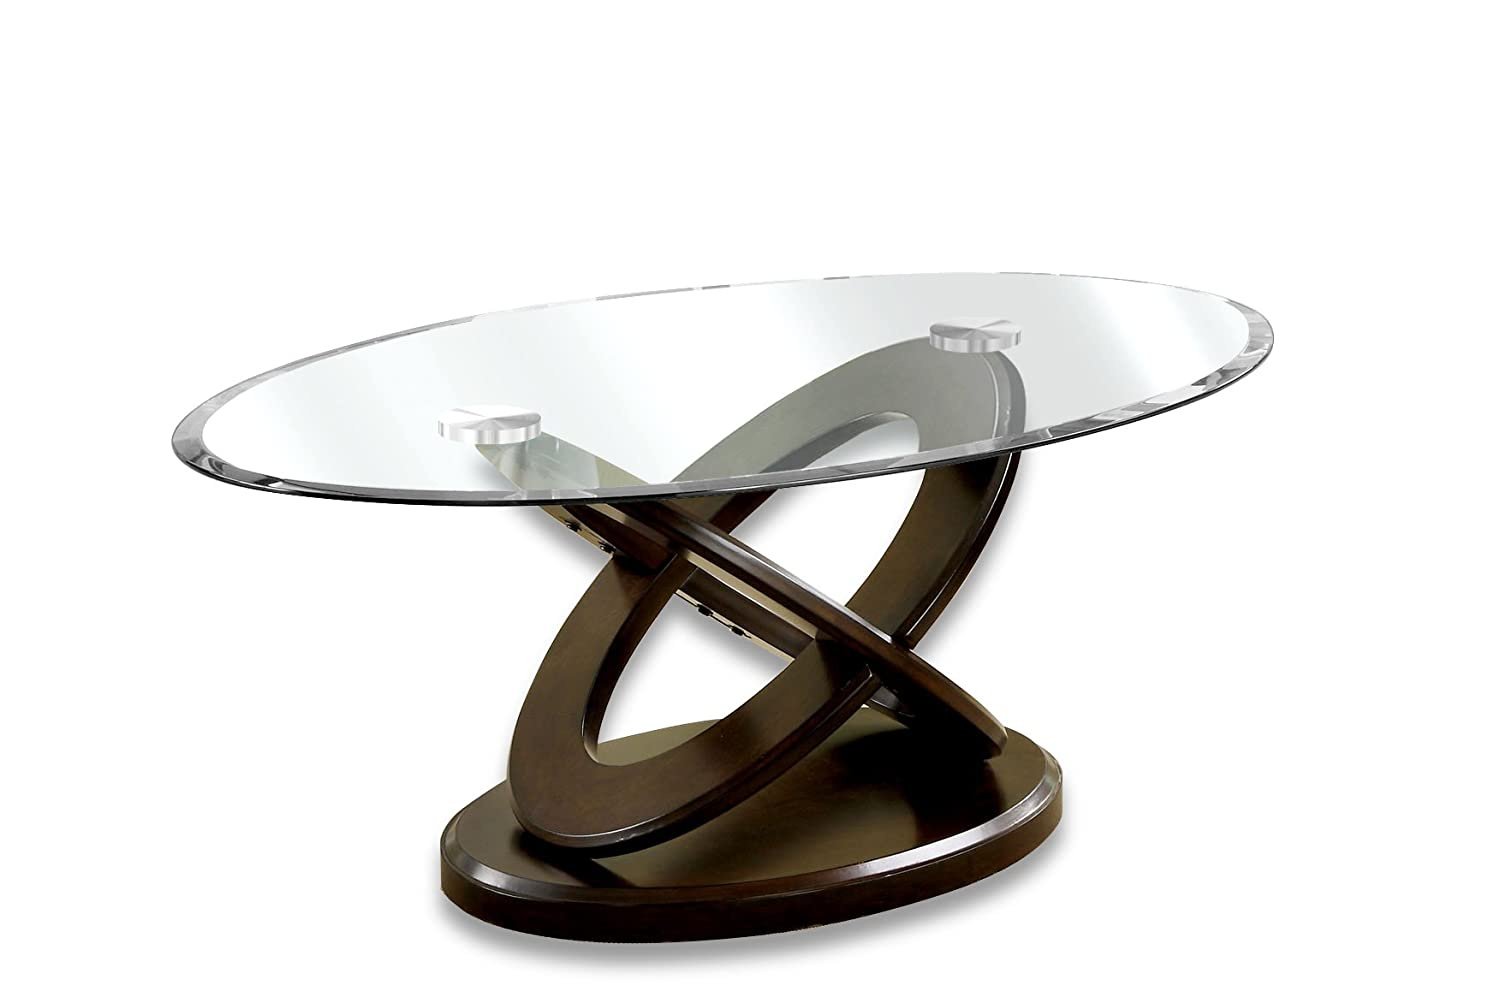 Best coffee table reviews, Coffee table, Best coffee table